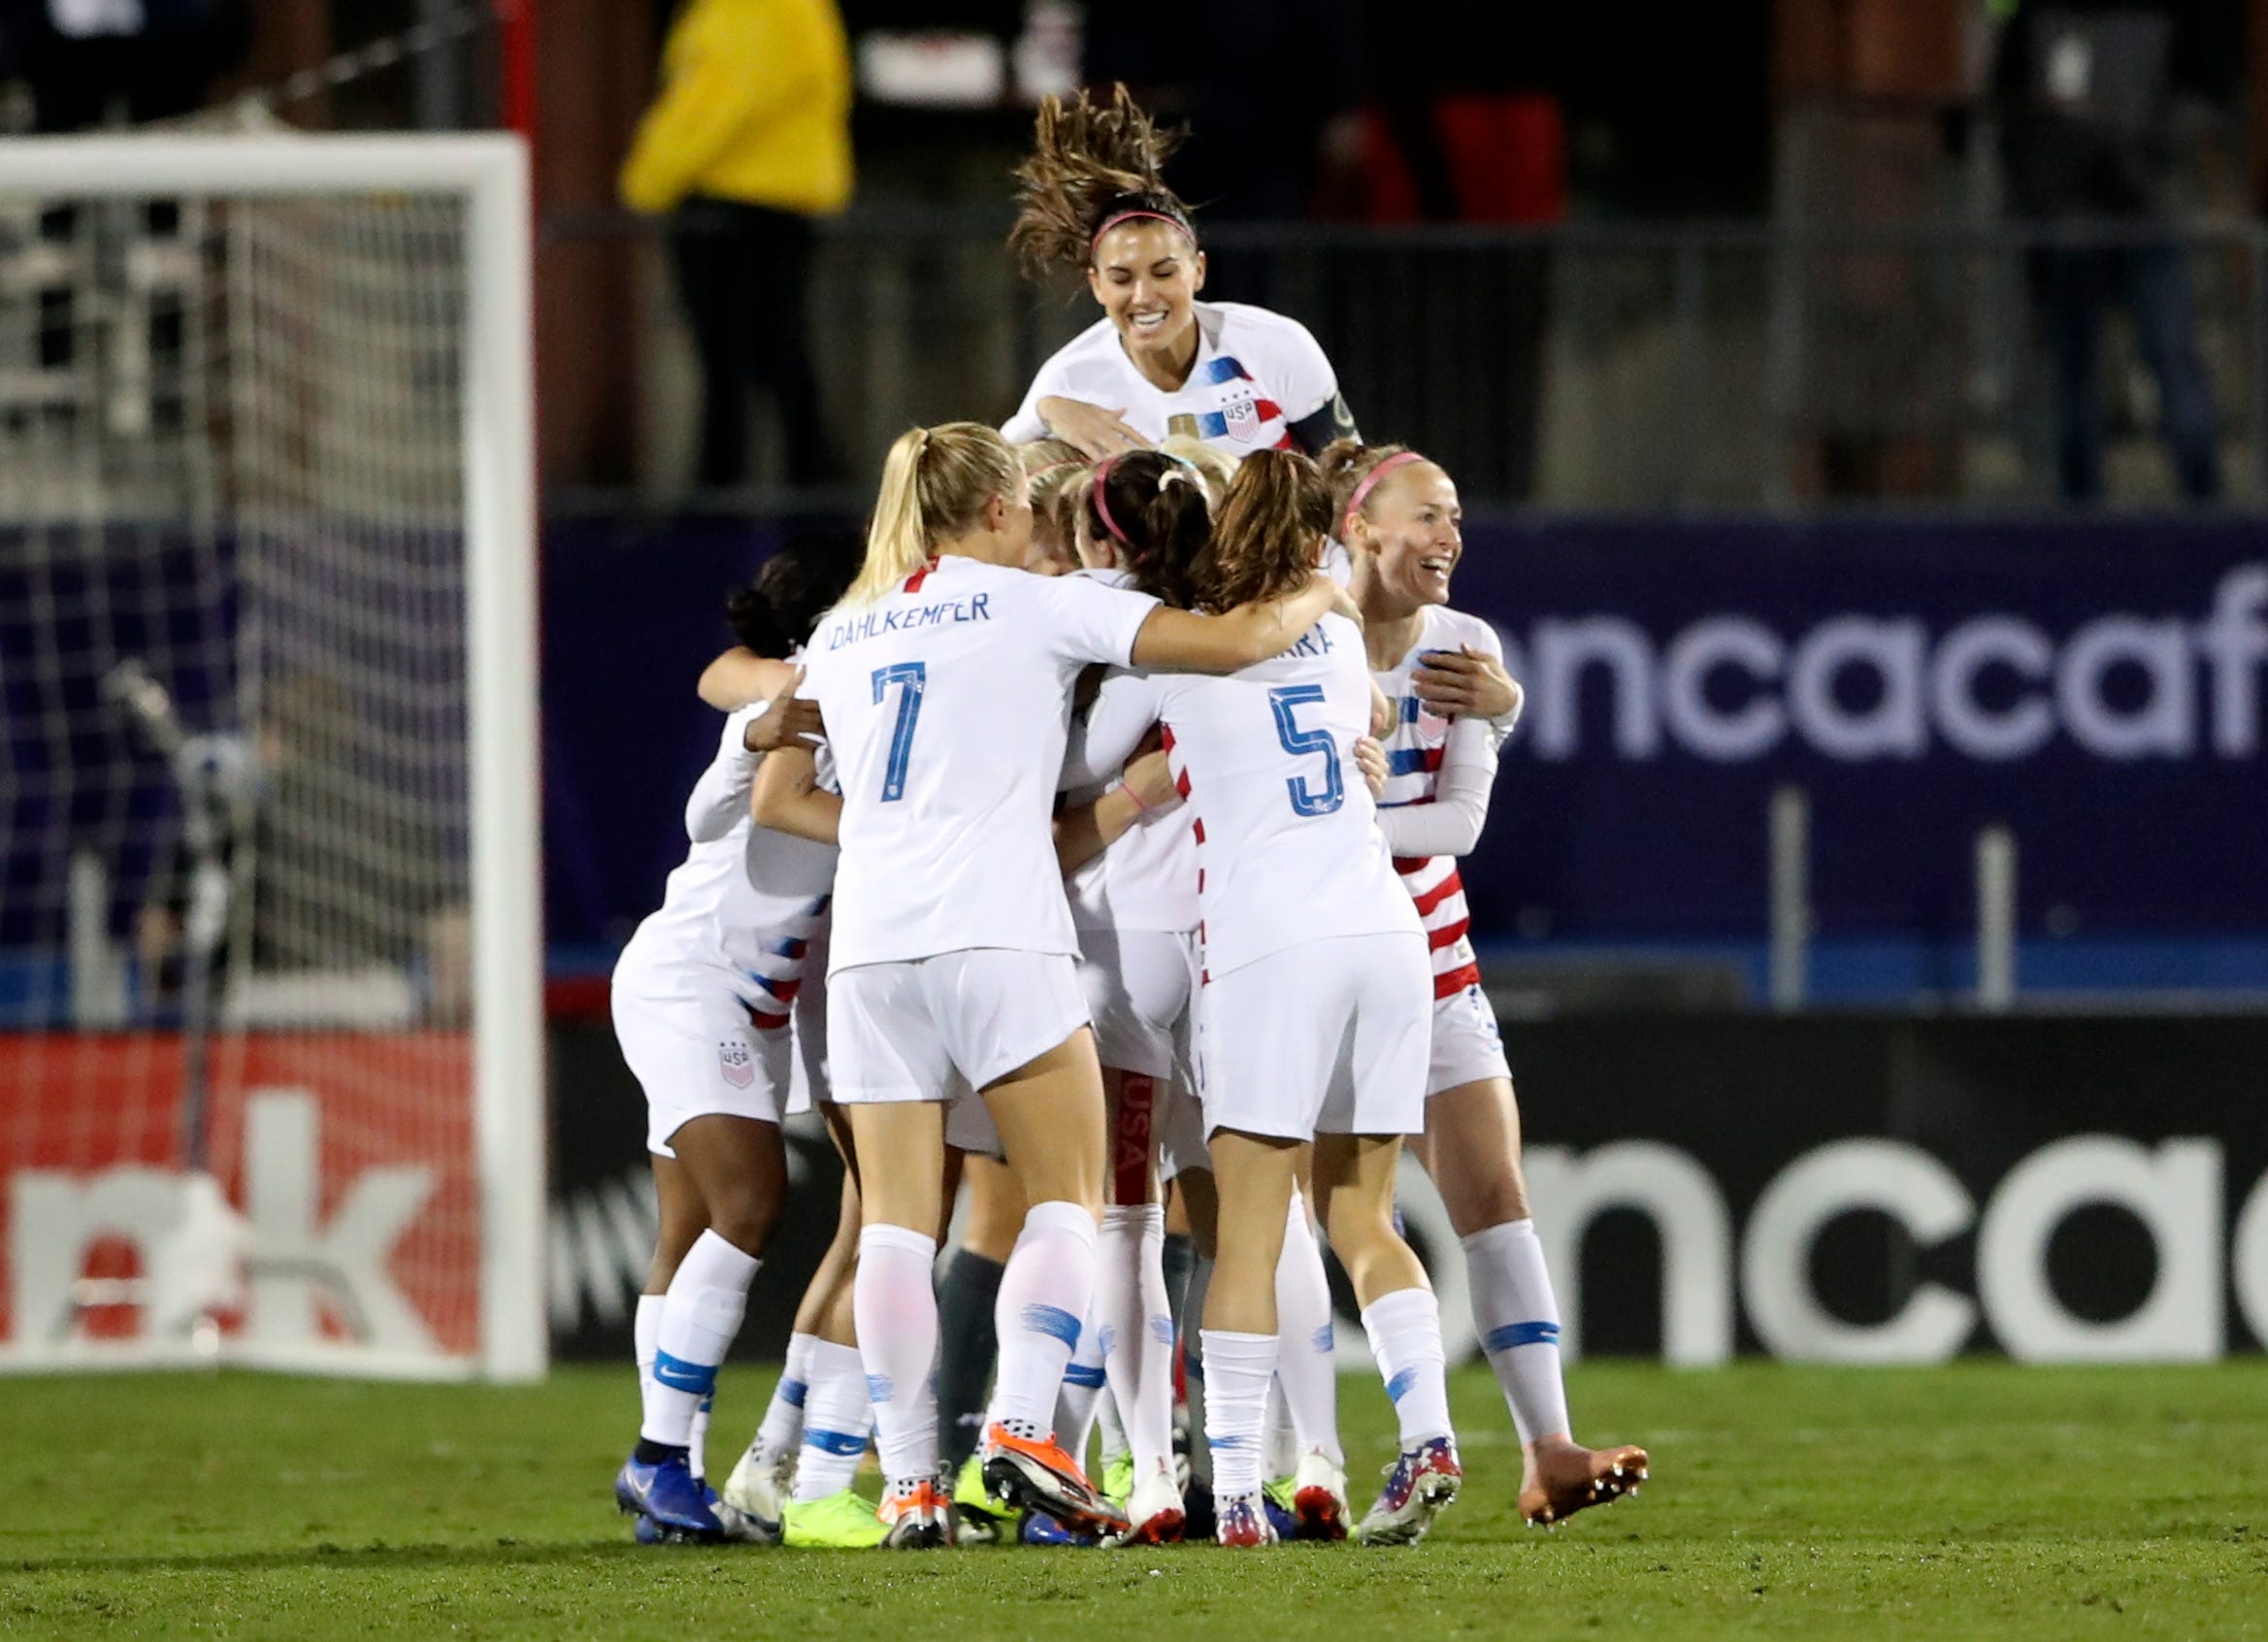 USA blanks rival Canada to win women's CONCACAF World Cup qualifying tournament